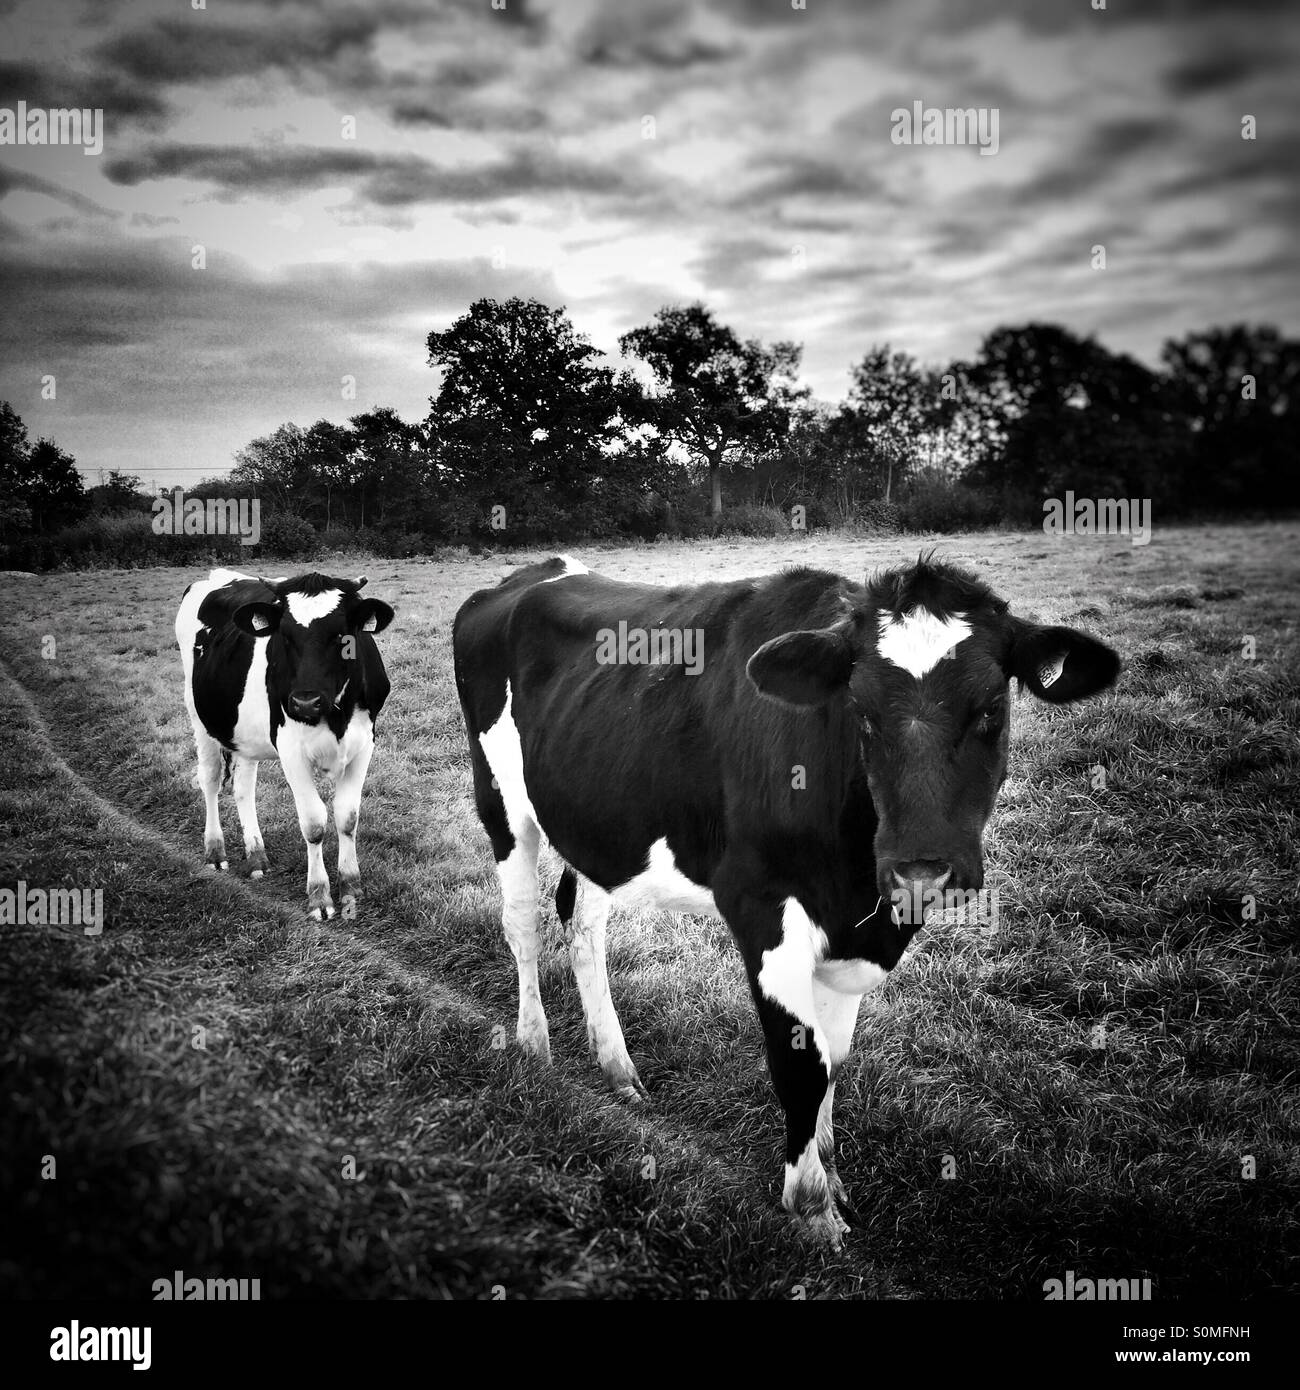 Cows strolling along path - Stock Image